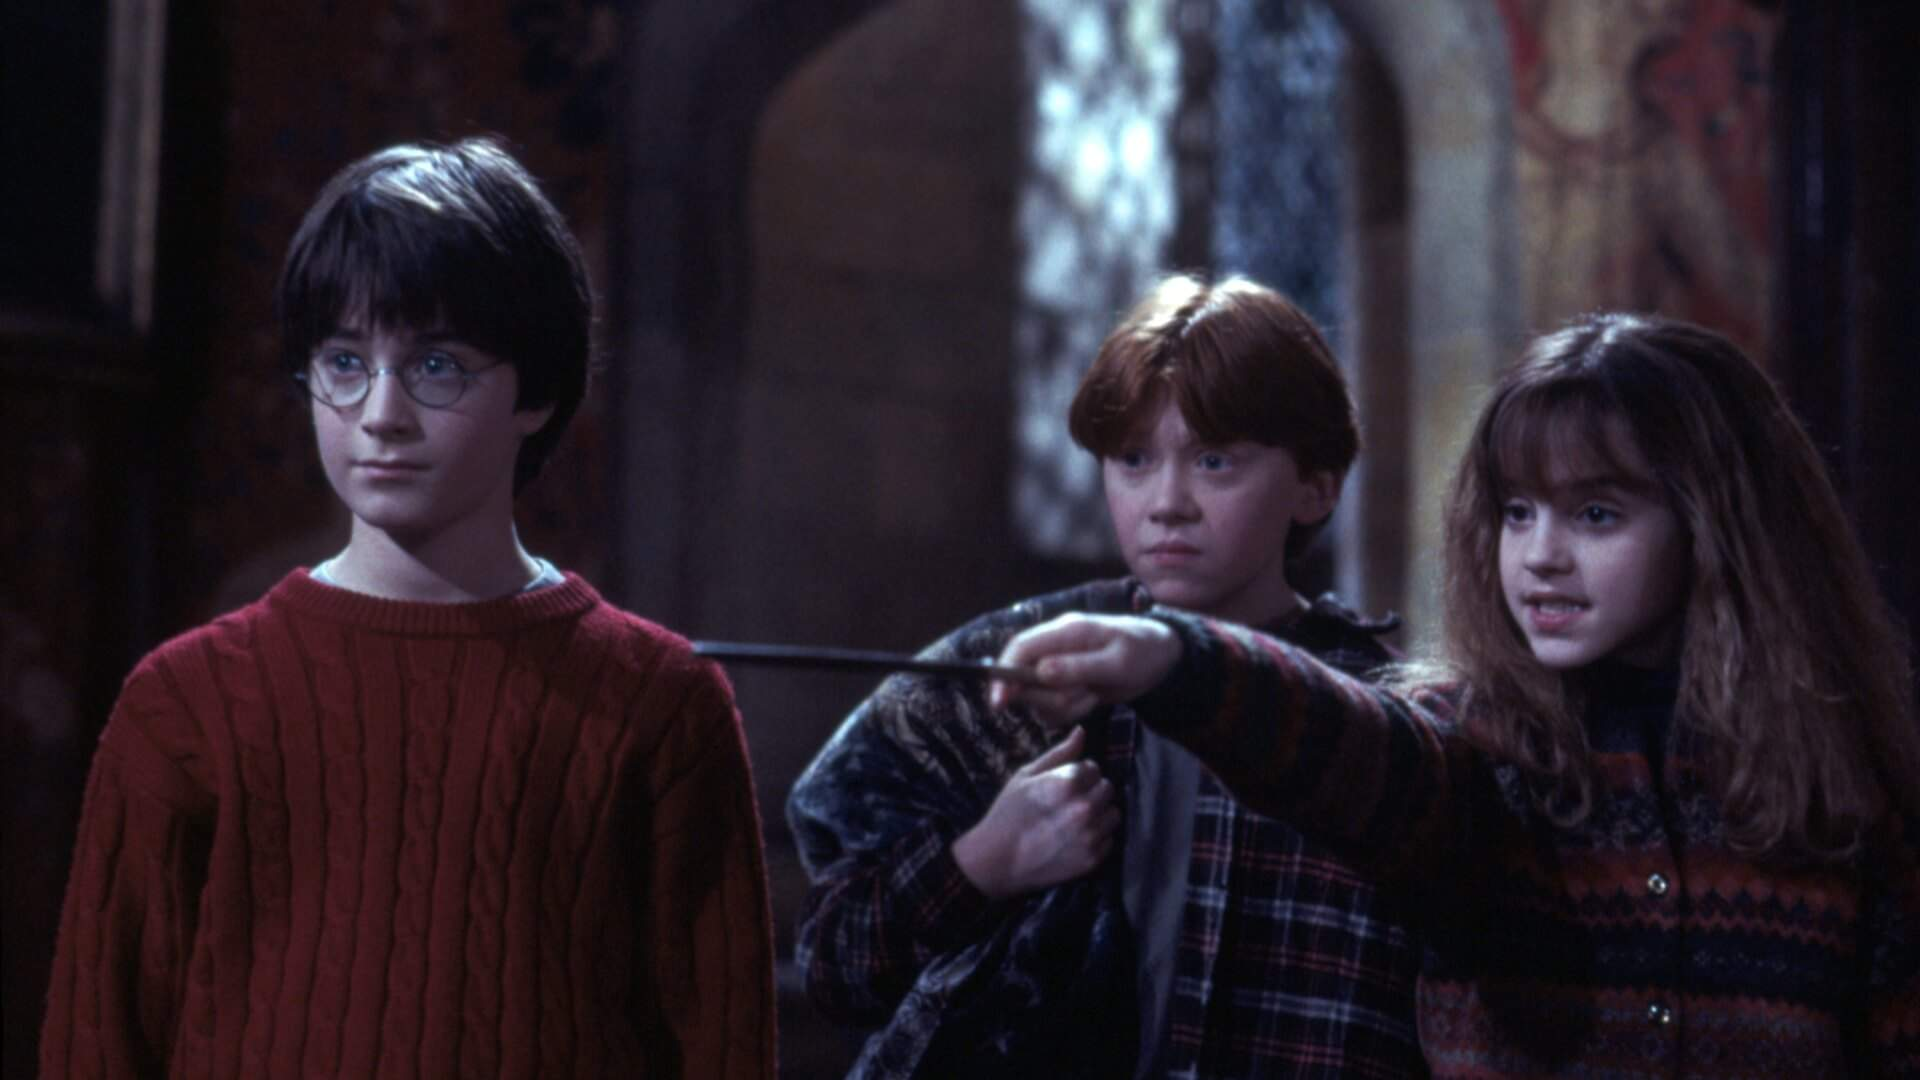 A 'Pokémon Go'-Style 'Harry Potter' Game Is Coming to Your Phone in 2019